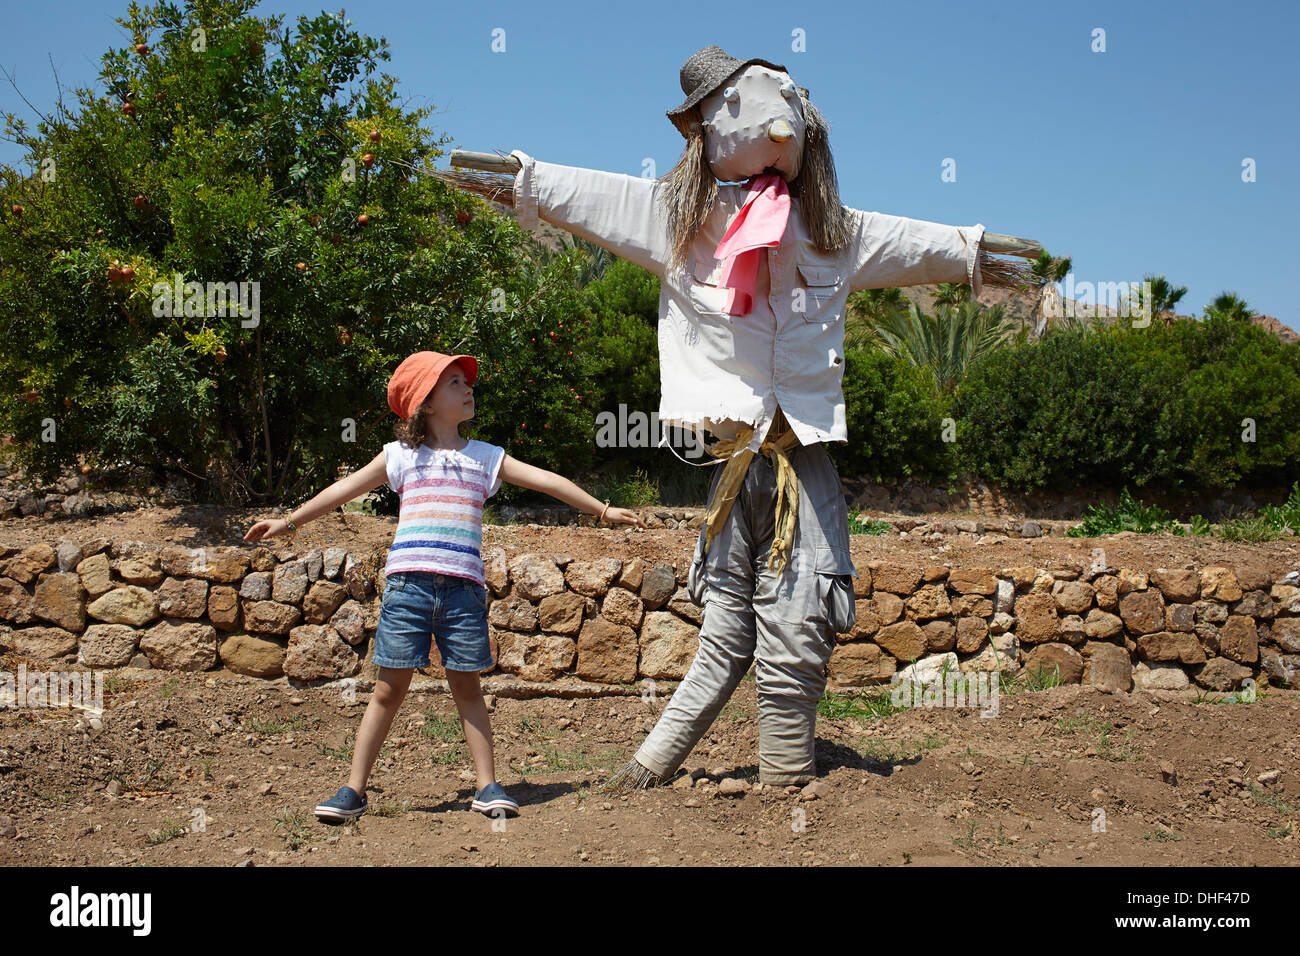 Girl standing next to scarecrow with arms out - Stock Image